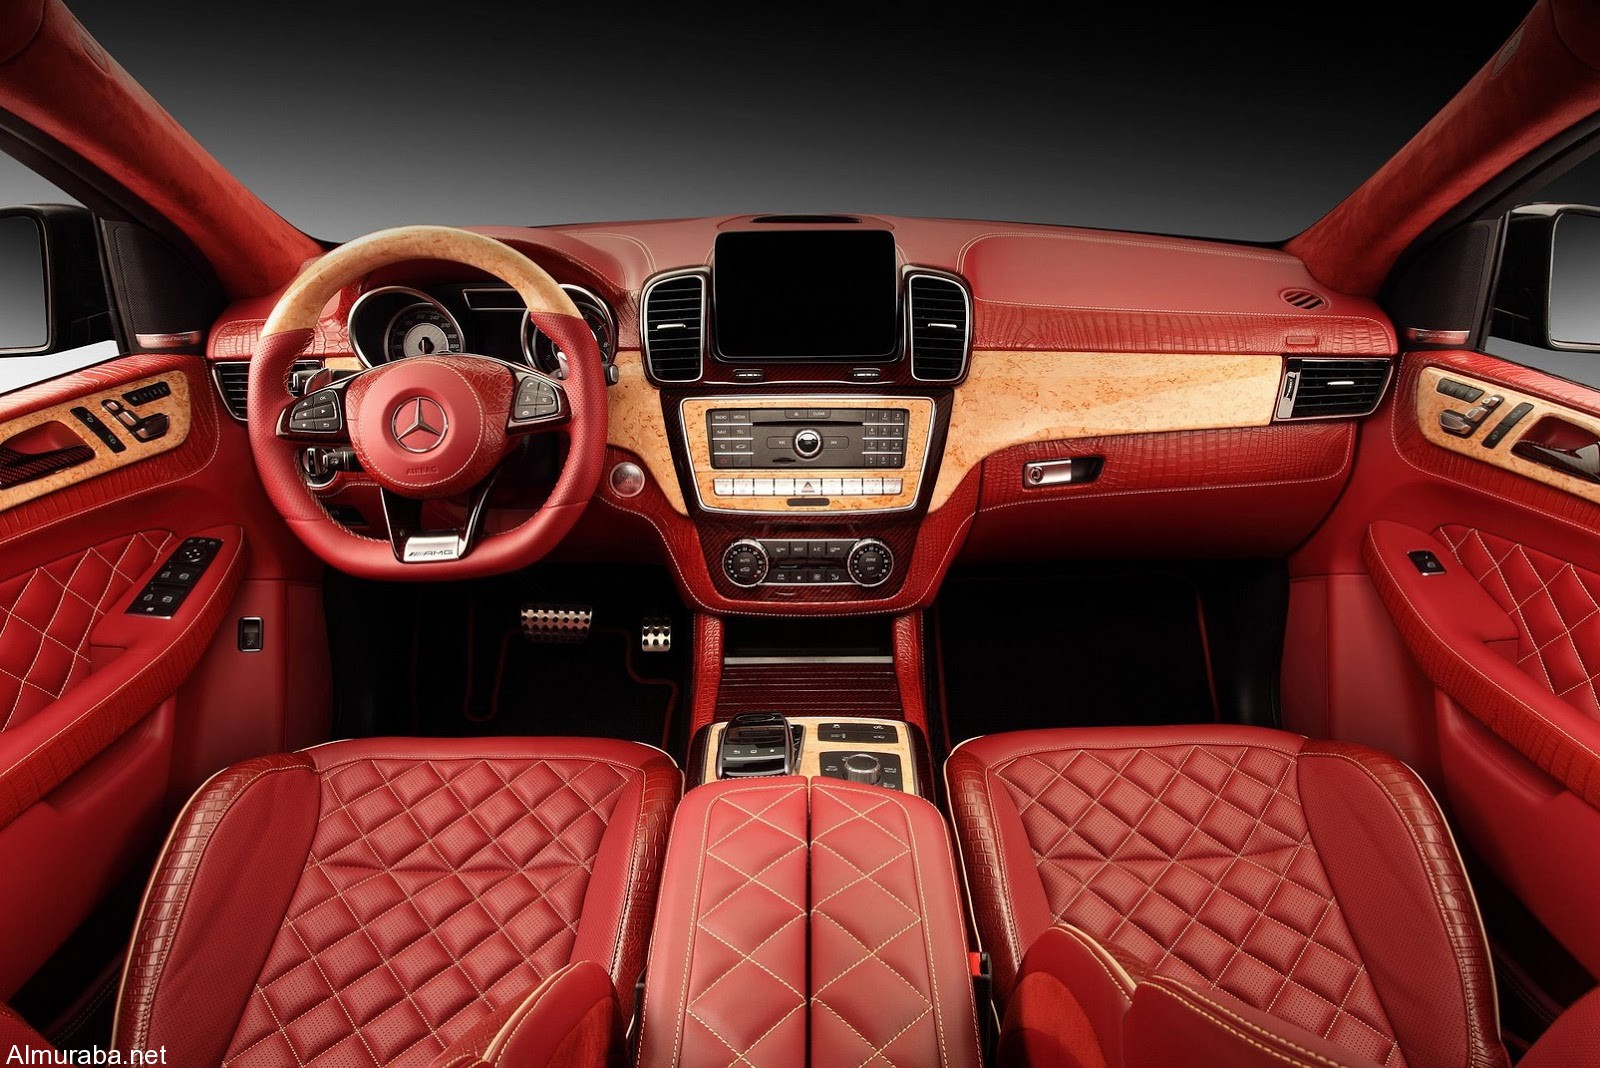 topcar-gle-coupe-red-crocodile-interior-11